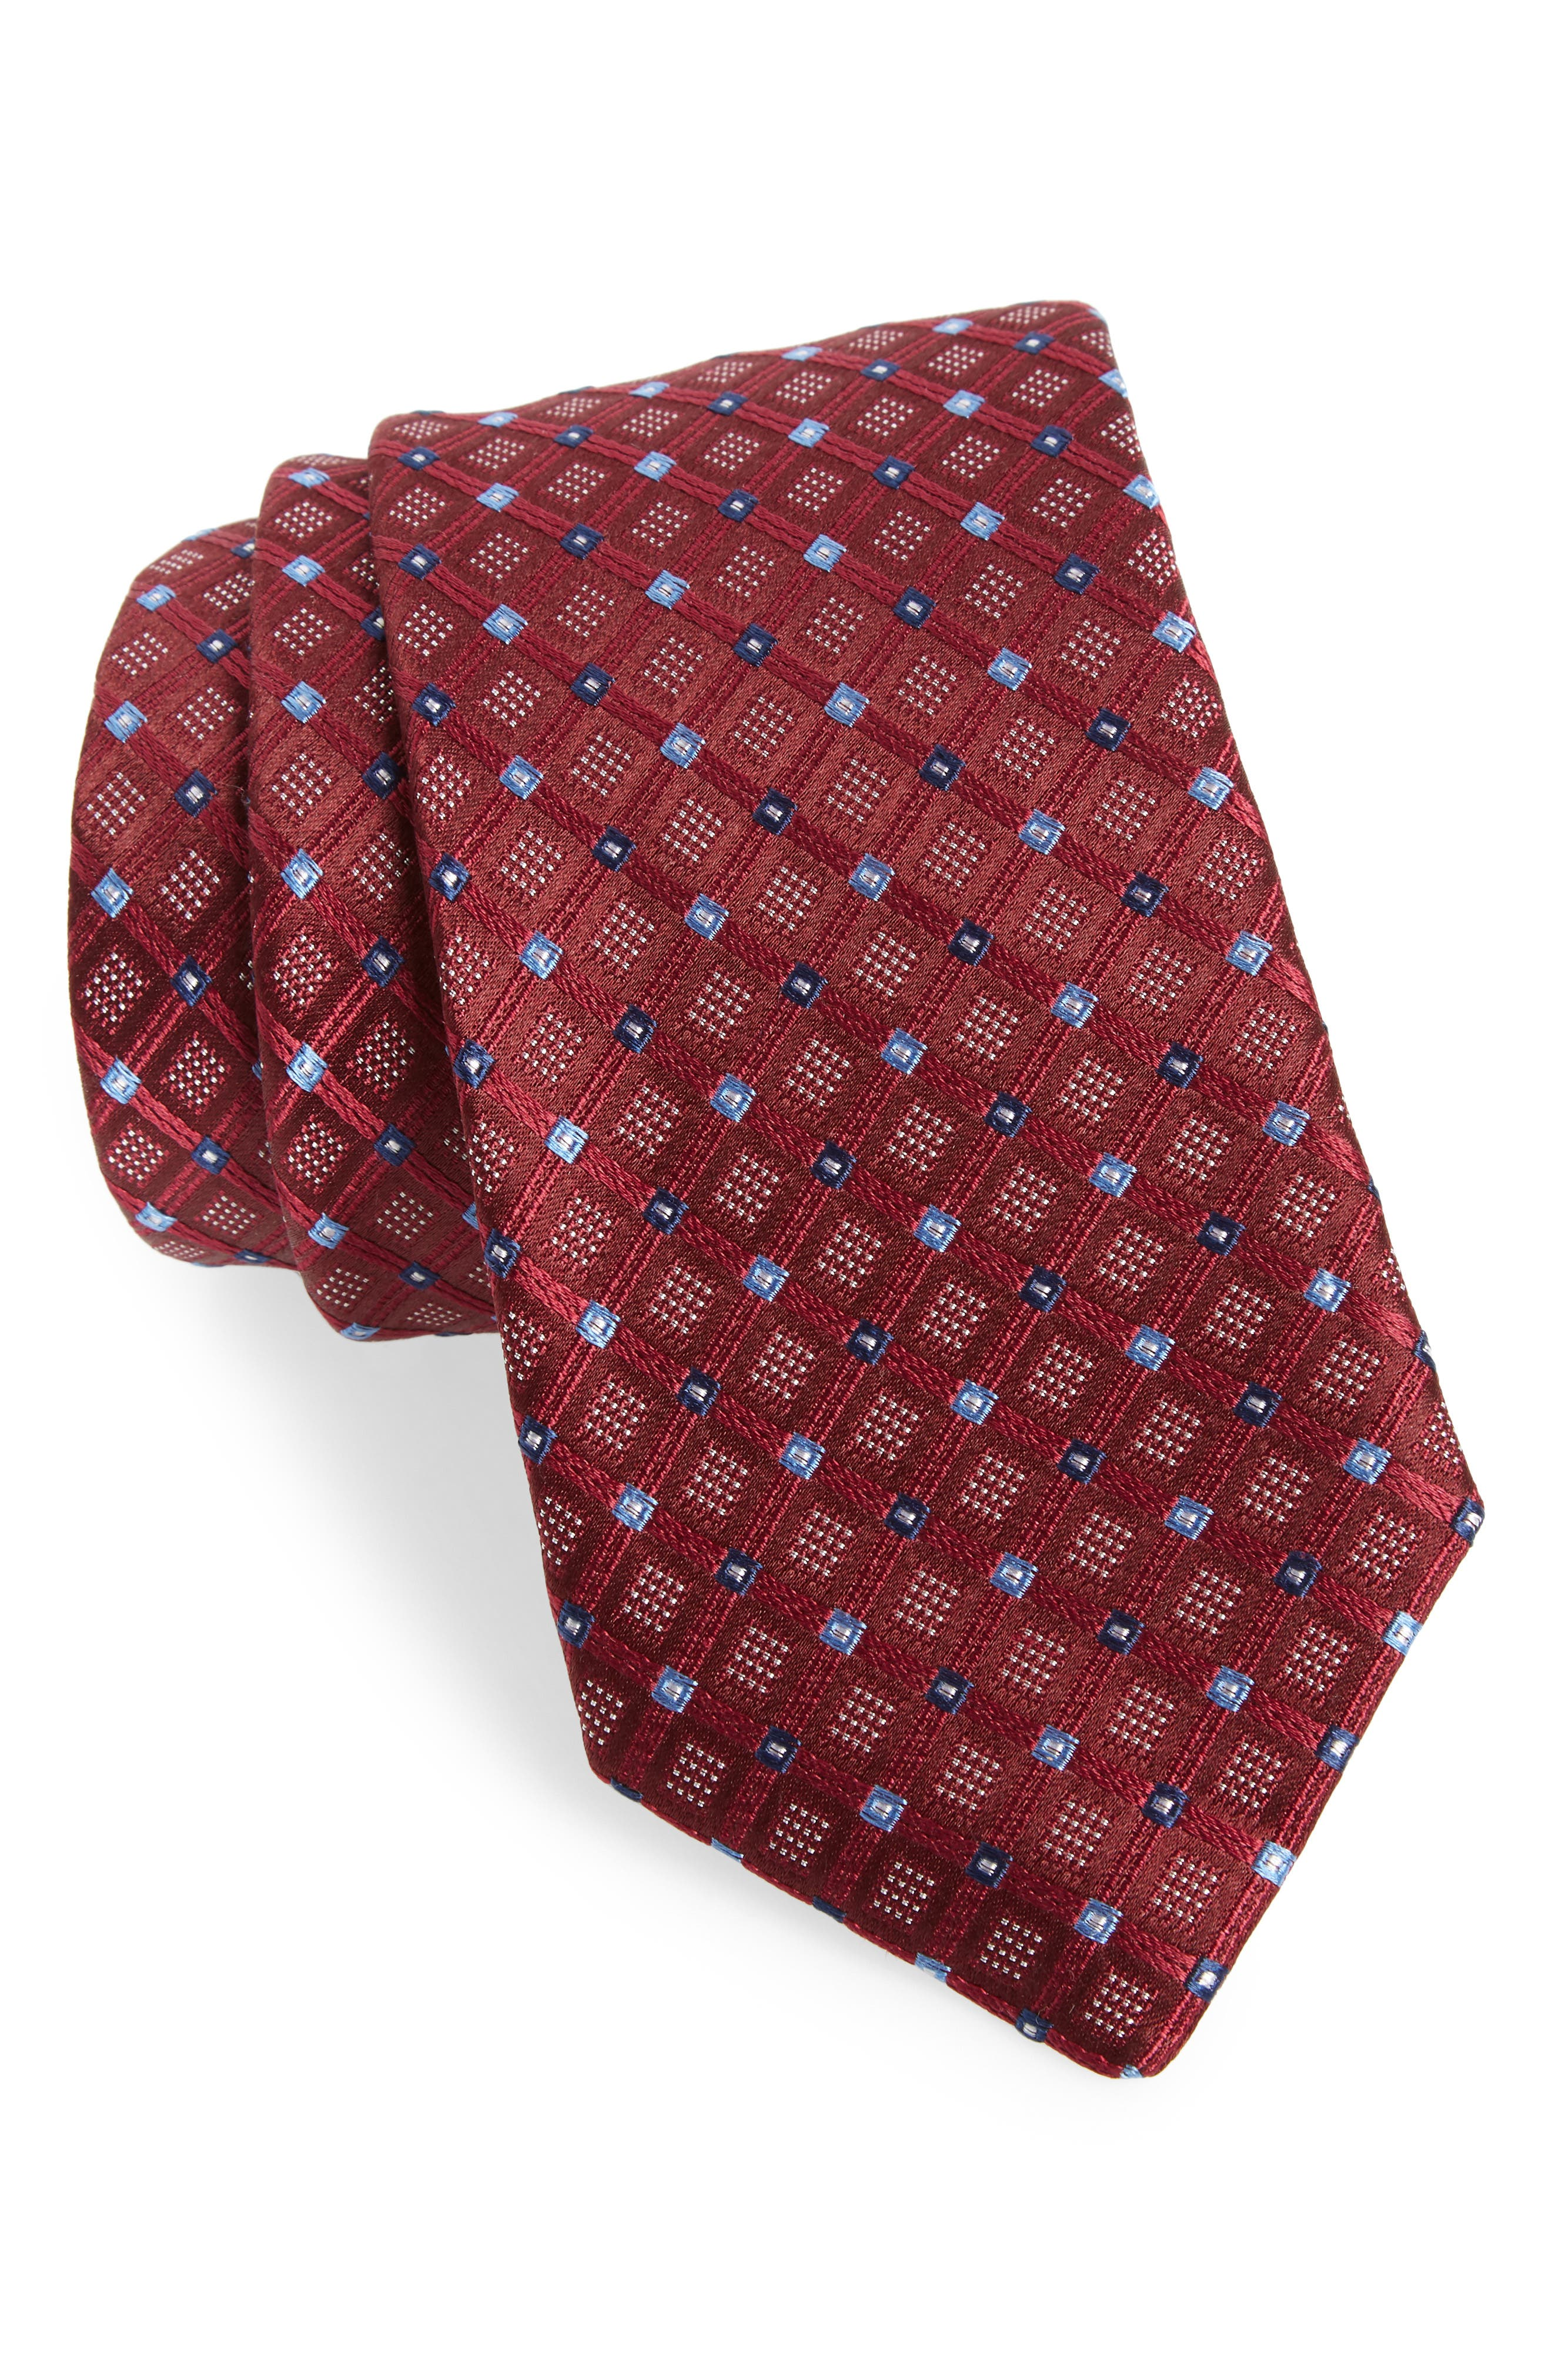 Coventry Check Silk Tie,                             Main thumbnail 1, color,                             Wine